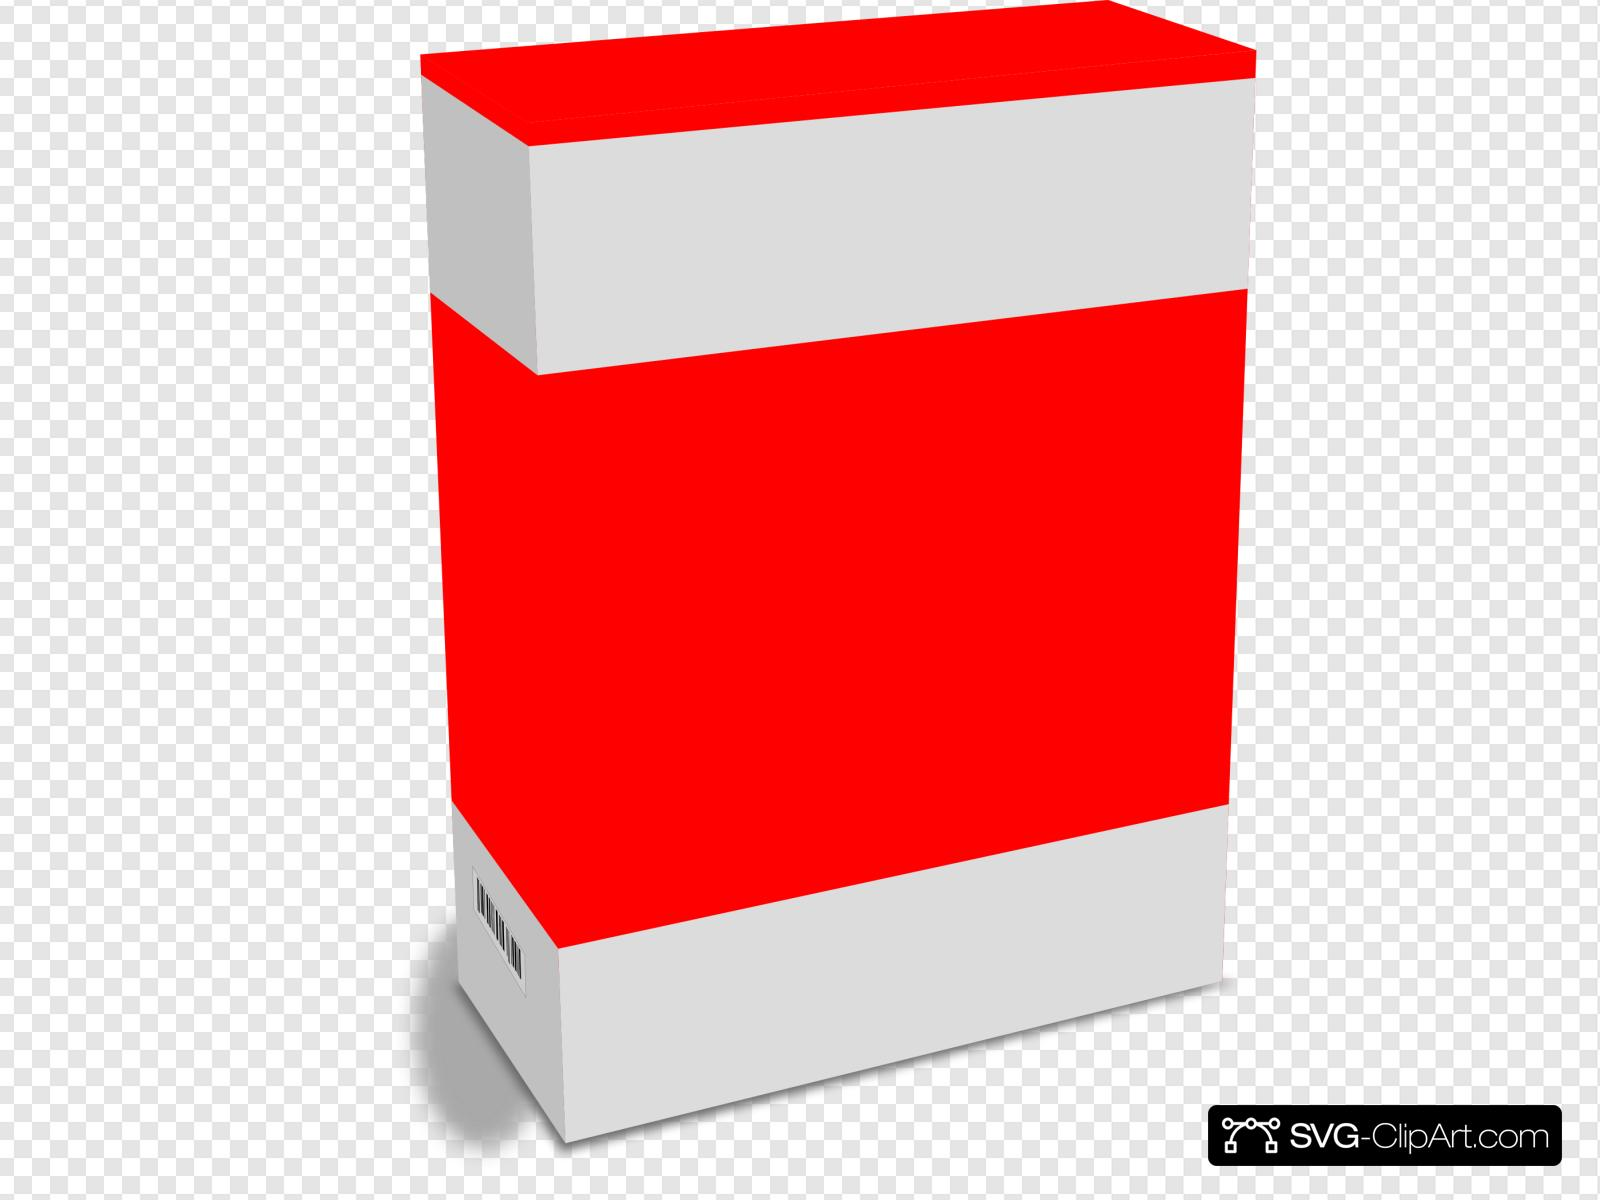 Redbox Clip art, Icon and SVG.